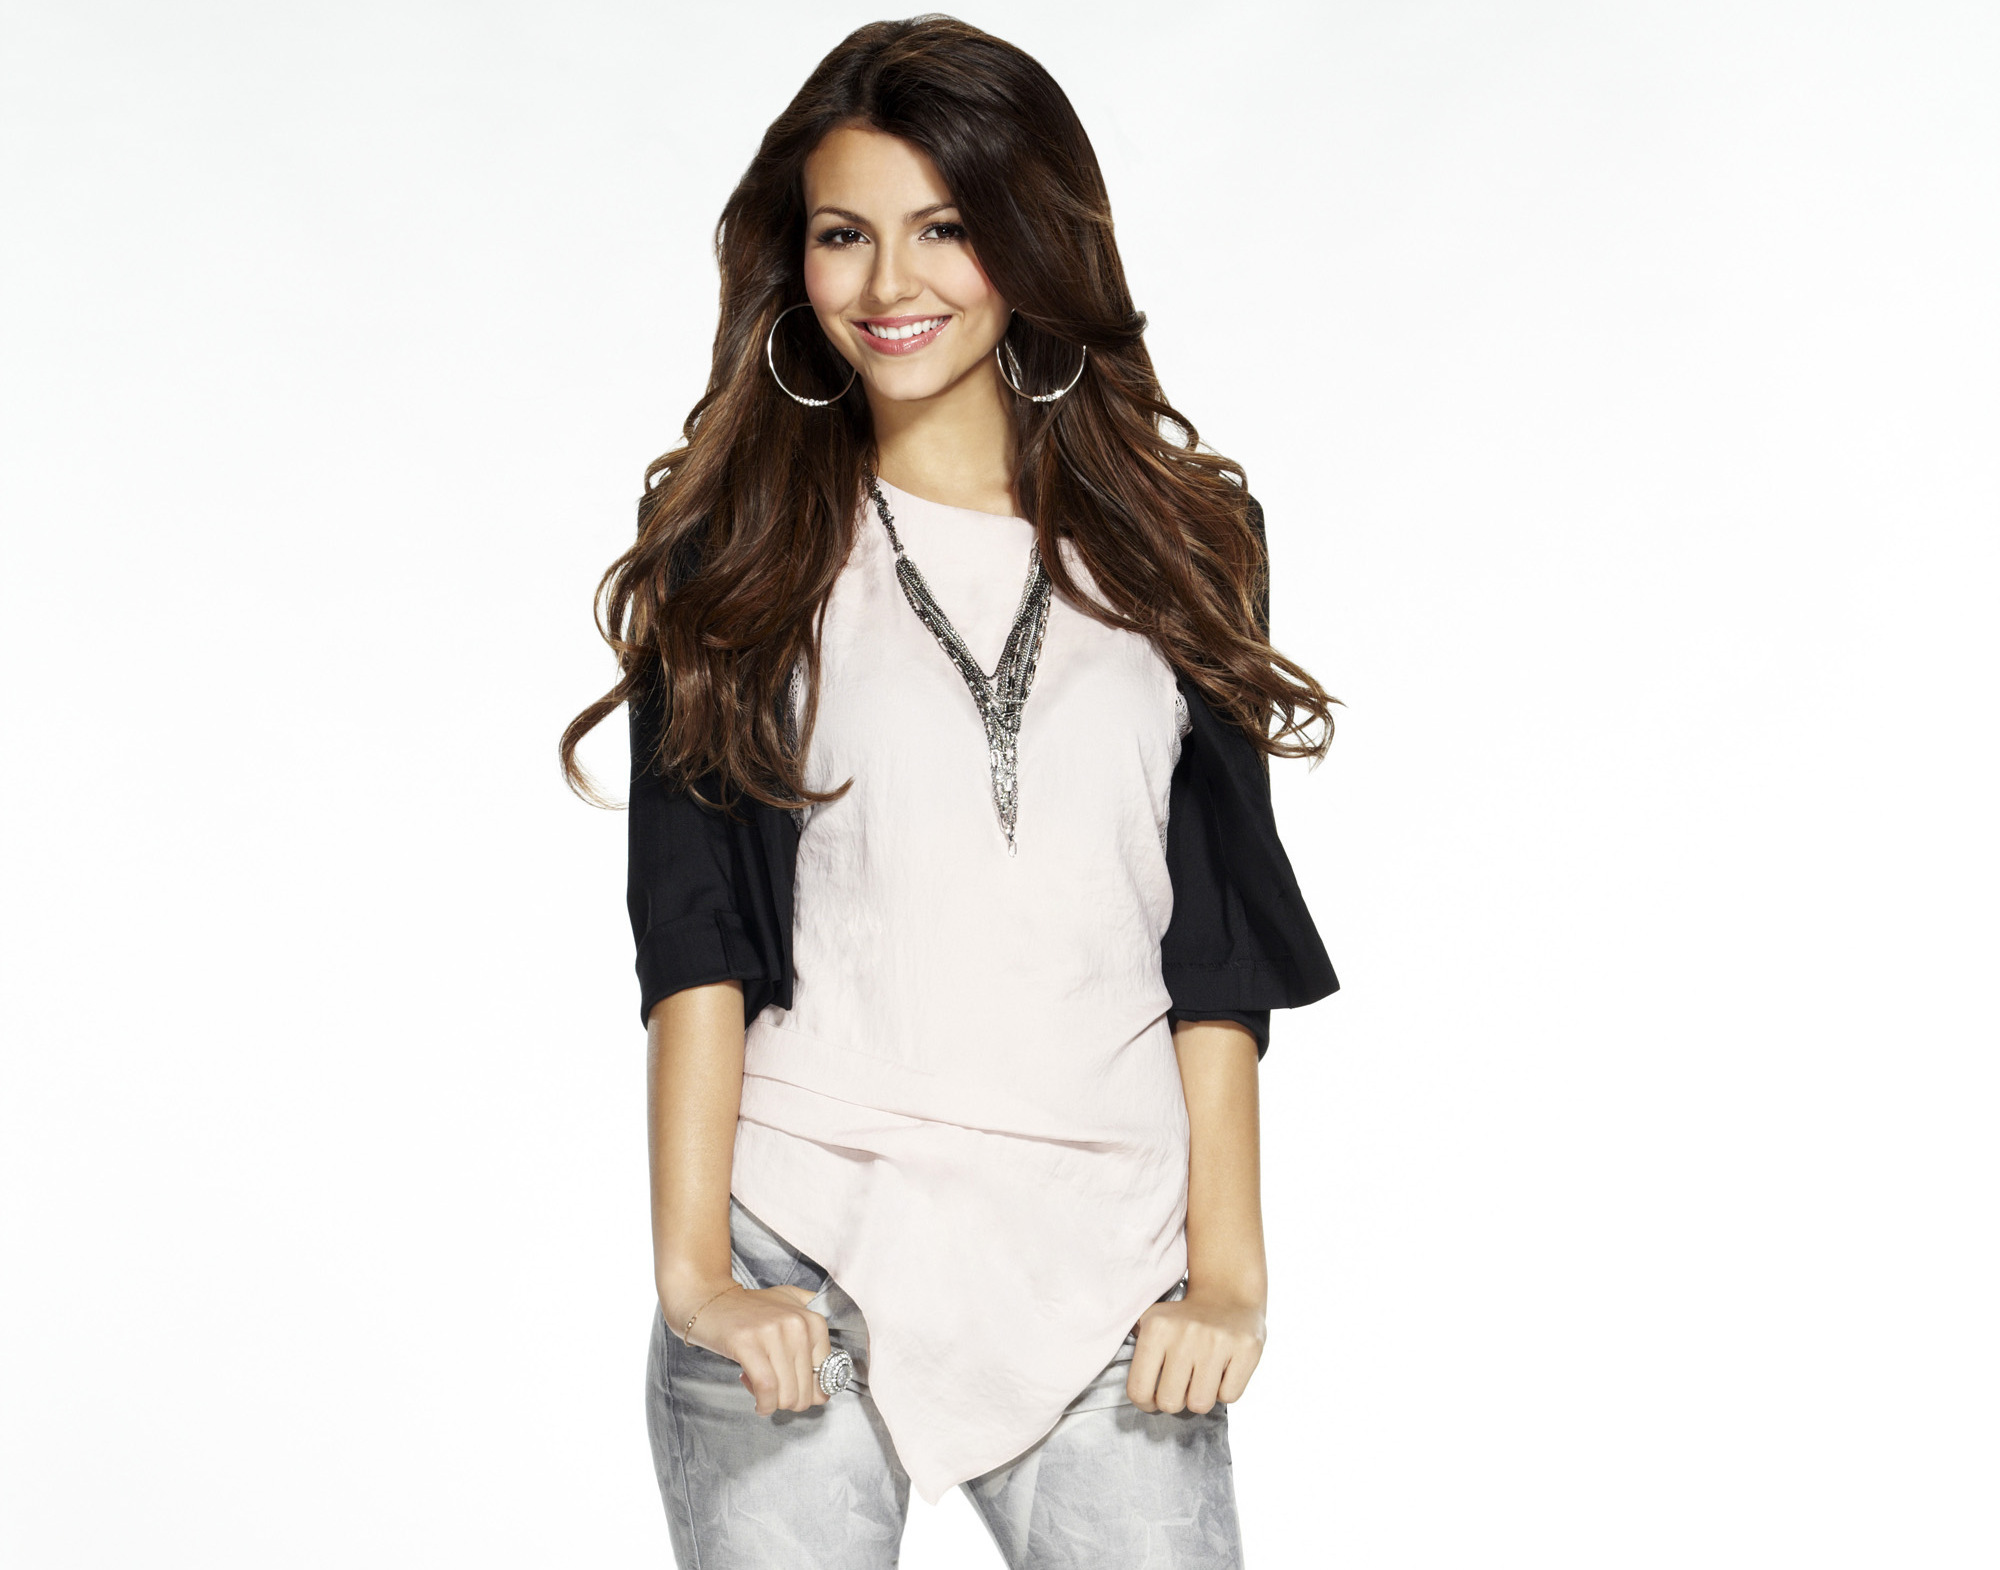 Victoria Justice Full HD Wallpaper And Background Image